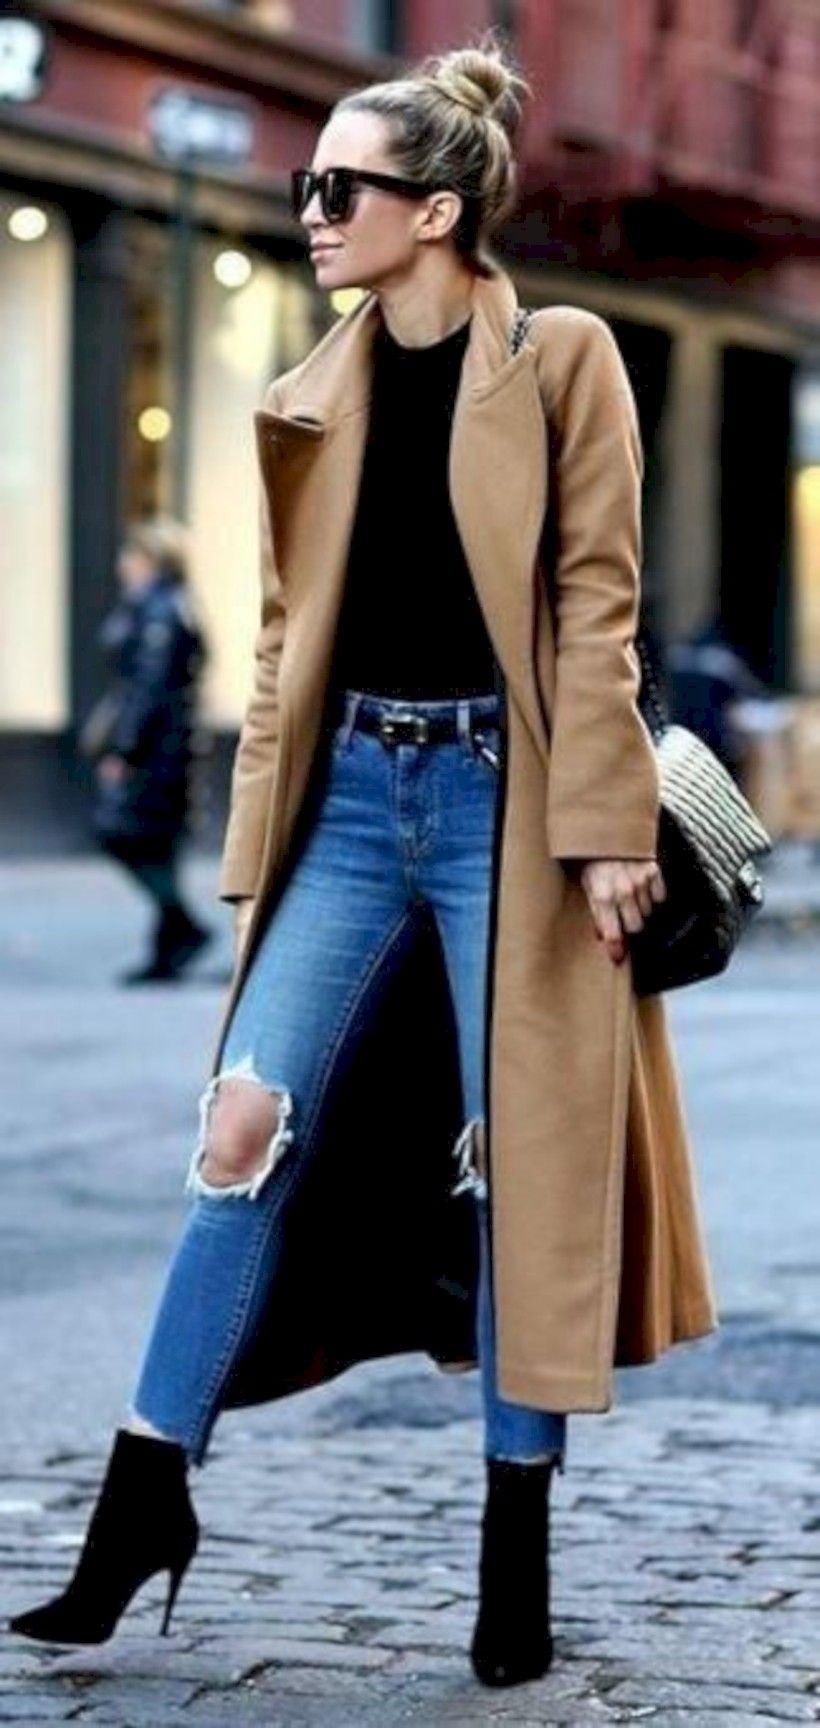 49c8efac6b4 Awesome 40 Cute Casual Winter Fashion Outfits for Women  https   looksglam.com